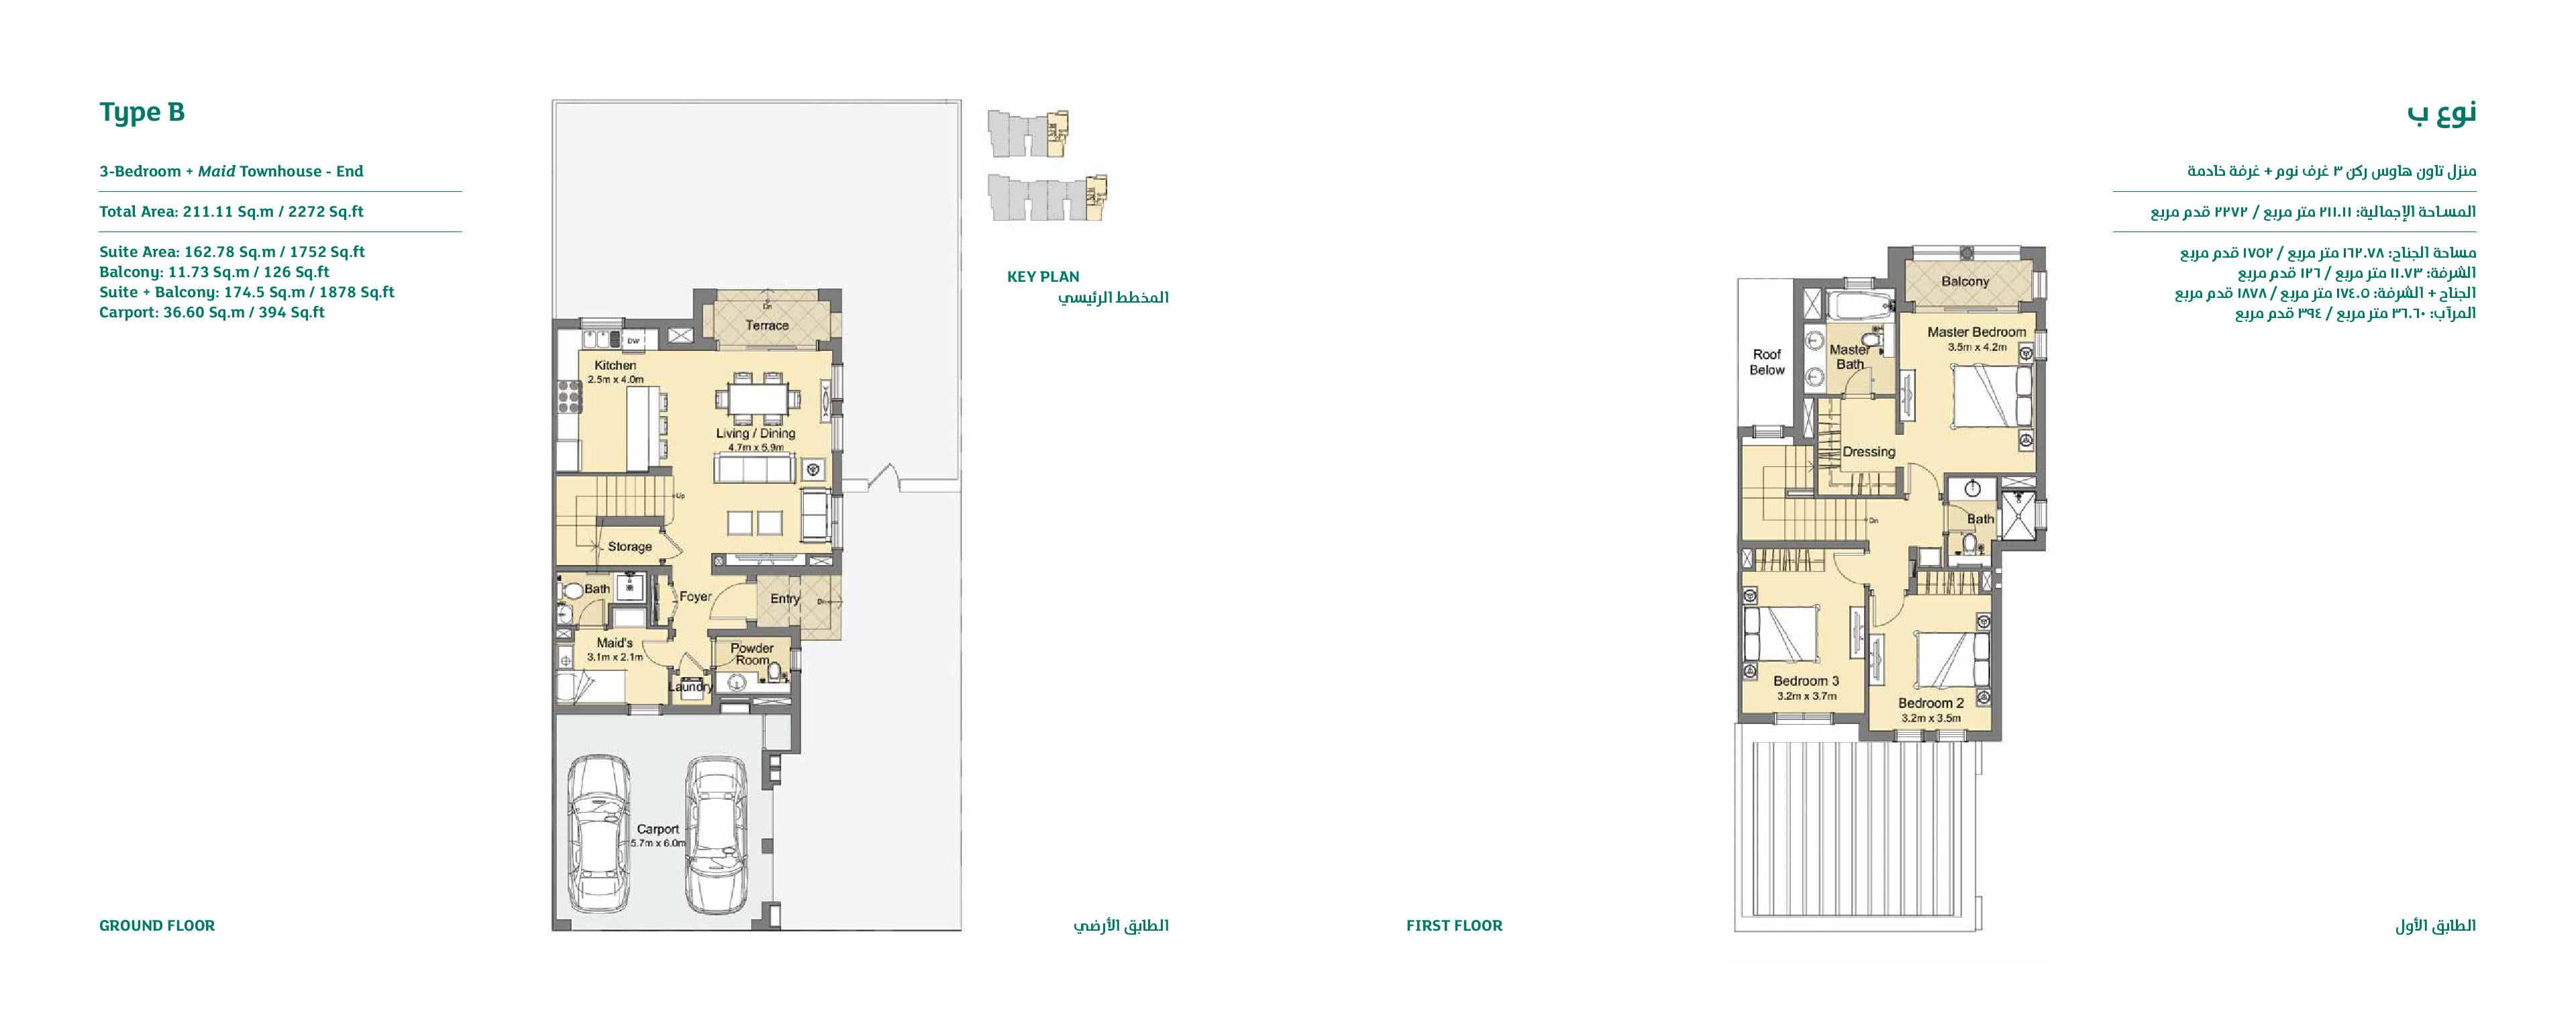 Palm Jumeirah Floor Plans Floor Plans Casa Viva Townhouses Dubai Off Plan Properties